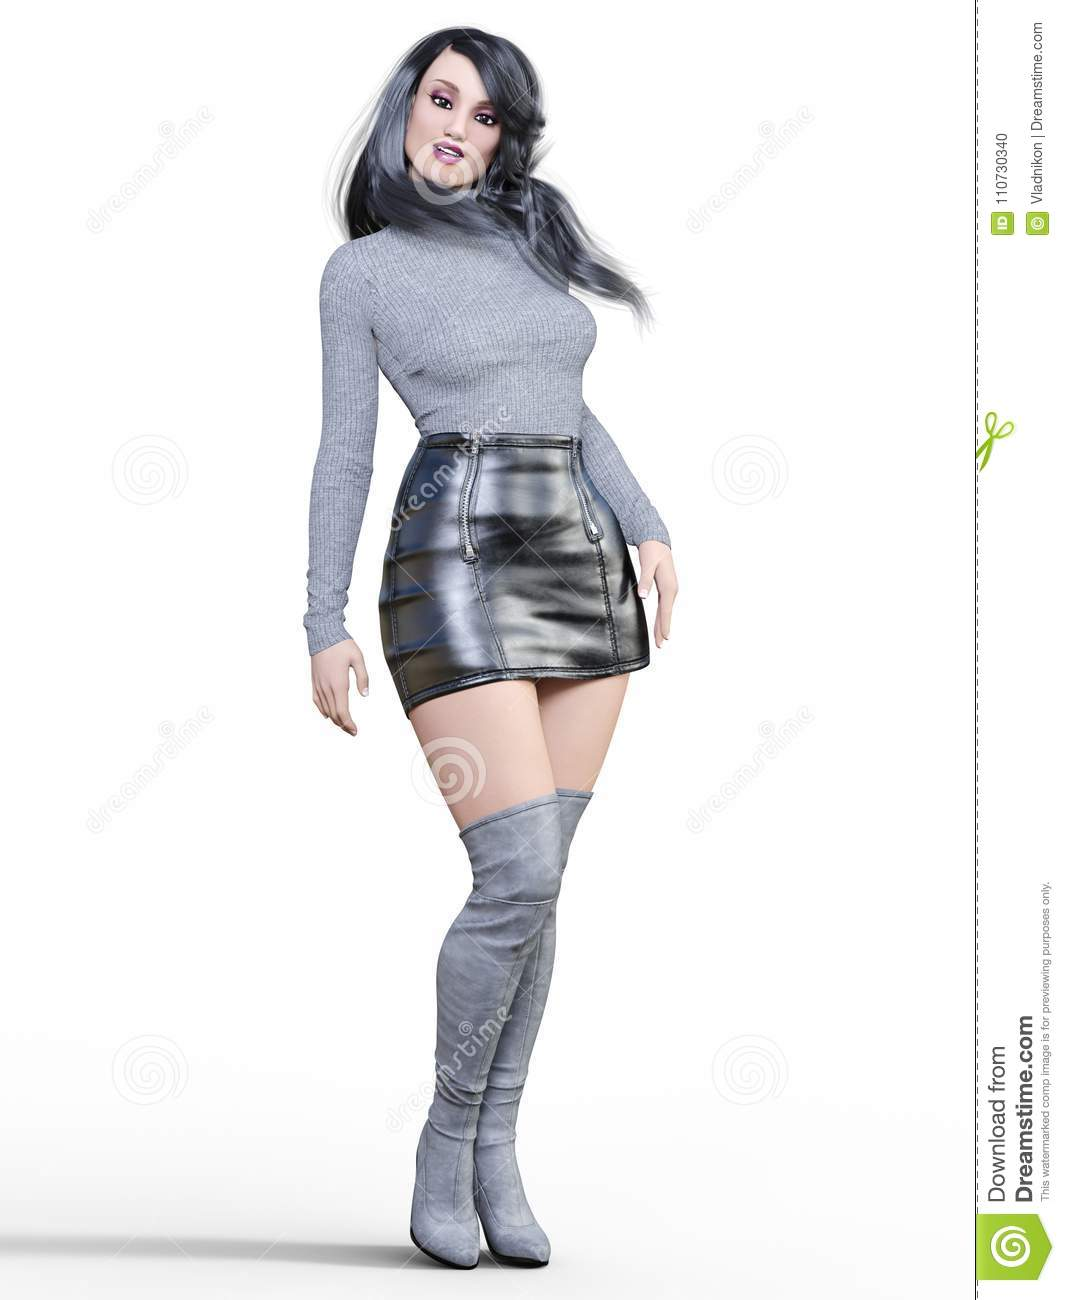 6e34391a8c6 3D beautiful woman in short black leather skirt and long boots.Gray  pullover.Bright makeup.Woman studio photography.High heel.Conceptual  fashion art.